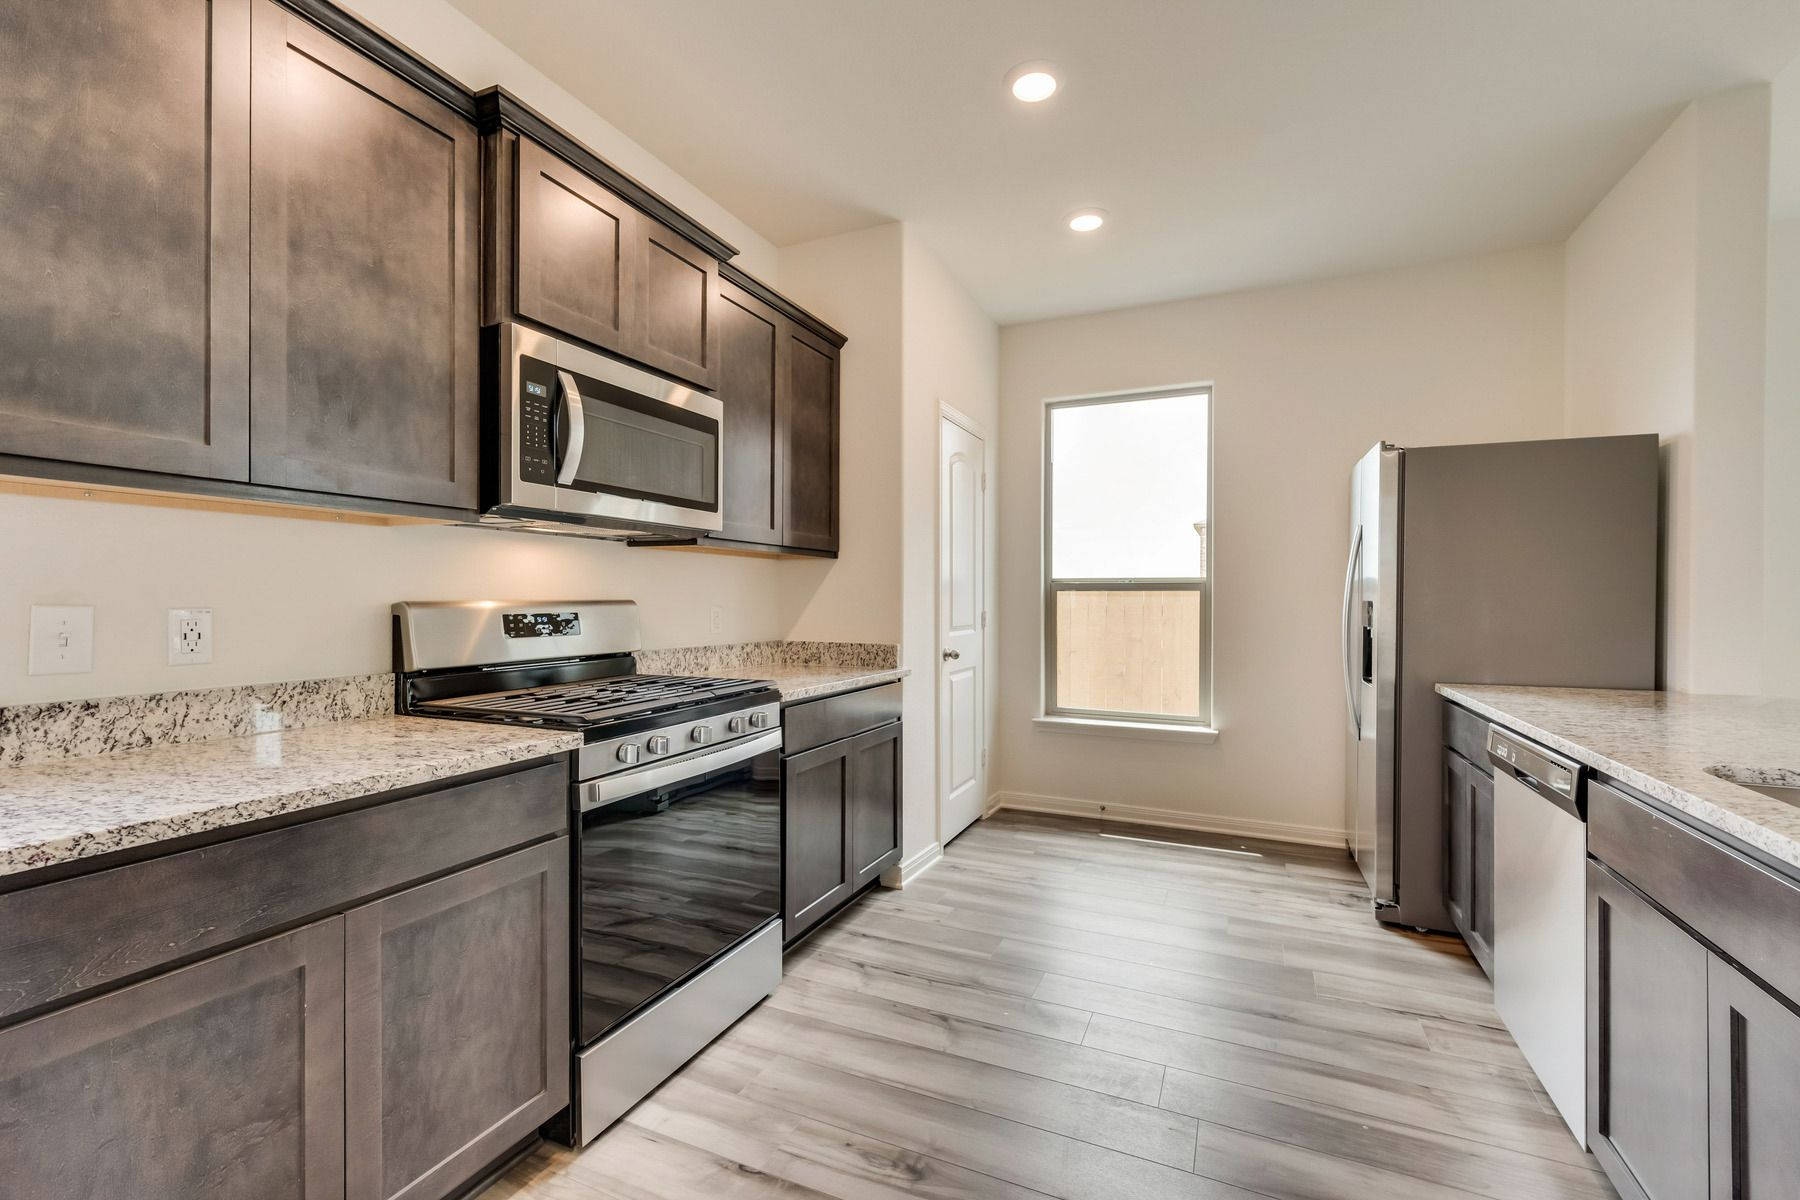 The Reed by LGI Homes:Enjoy stunning granite countertops and designer wood cabinetry in this kitchen.